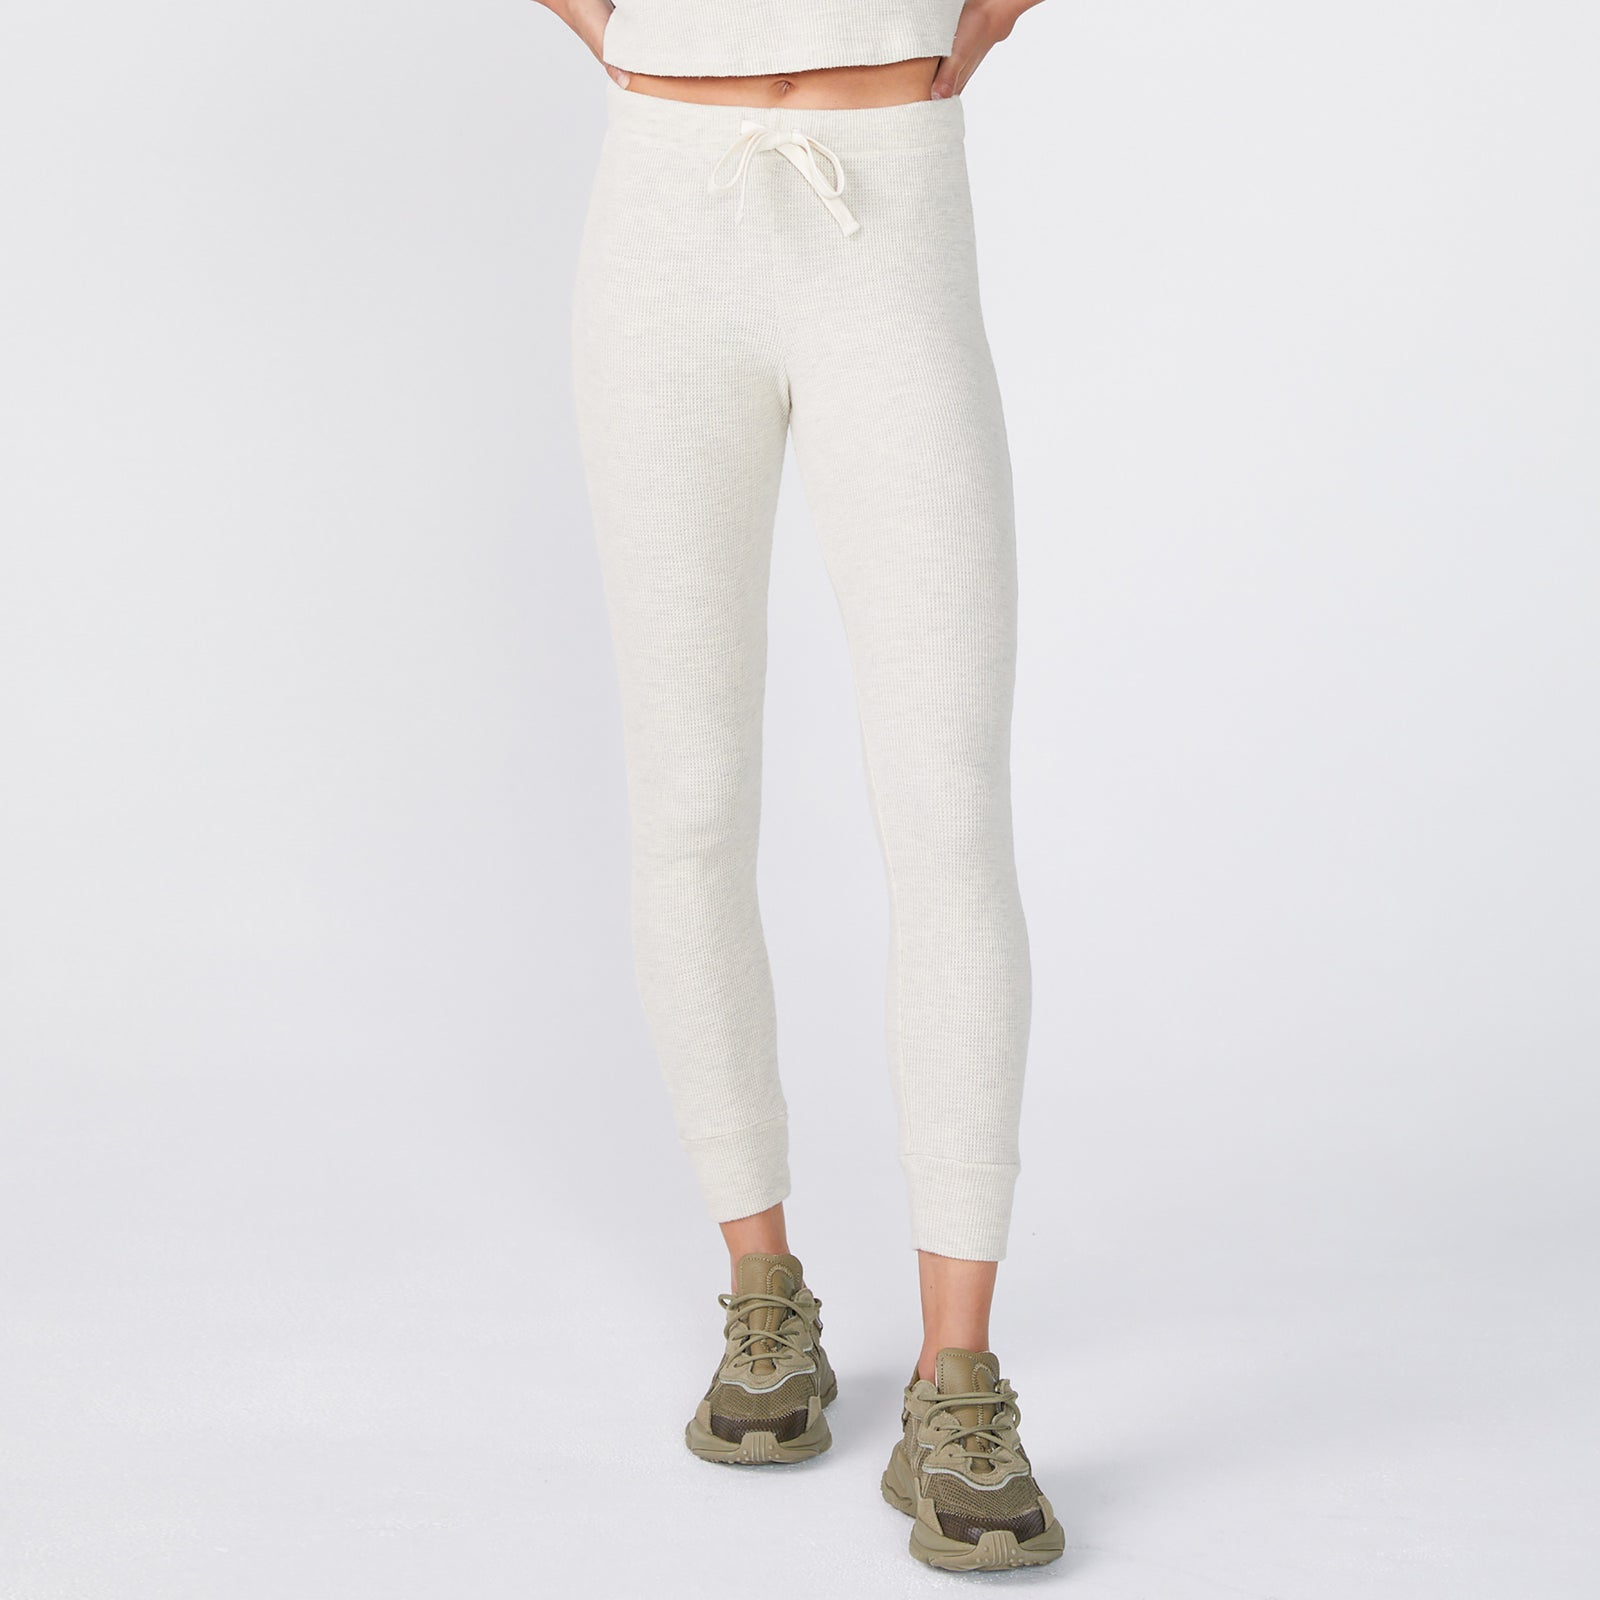 Brushed Thermal Skinny Sweats (6551222616246)